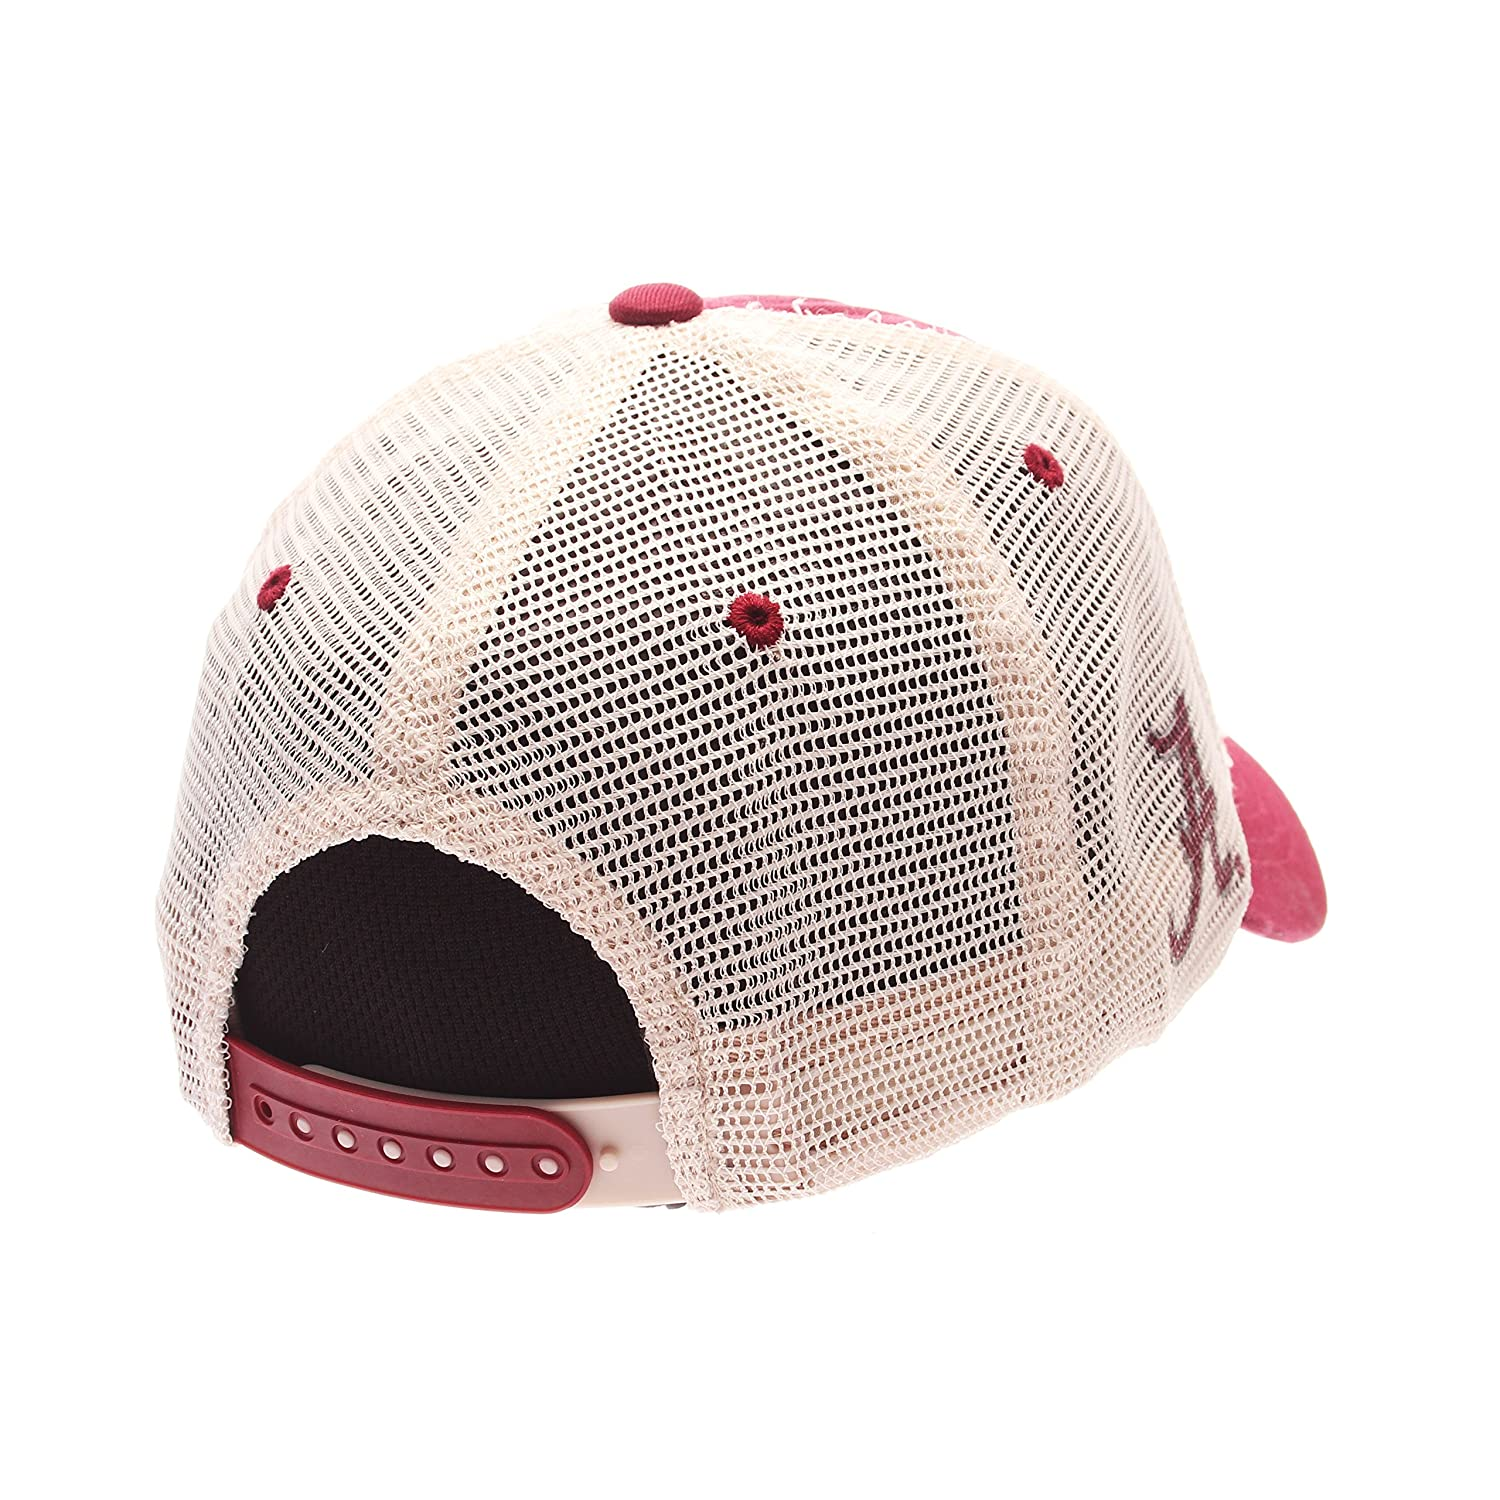 300dd3b9 Amazon.com : Zephyr NCAA Alabama Crimson Tide Adult Men RoadTrip Relaxed Cap,  Adjustable, Cardinal : Sports & Outdoors